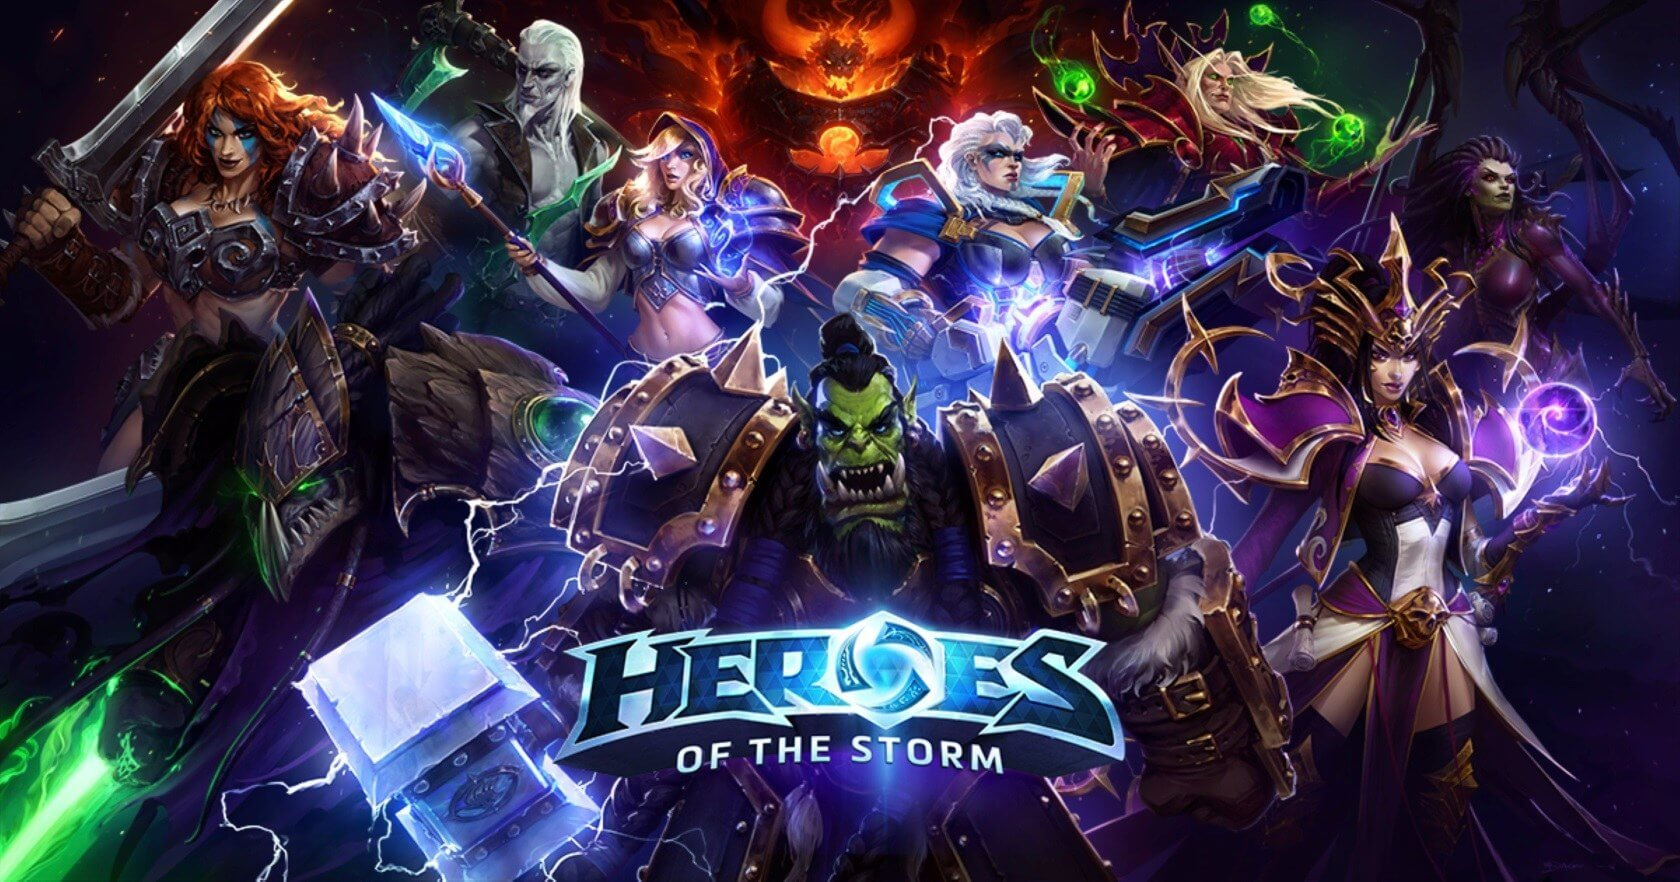 Heroes of the Storm pros furious over Blizzard's decision to discontinue HGC